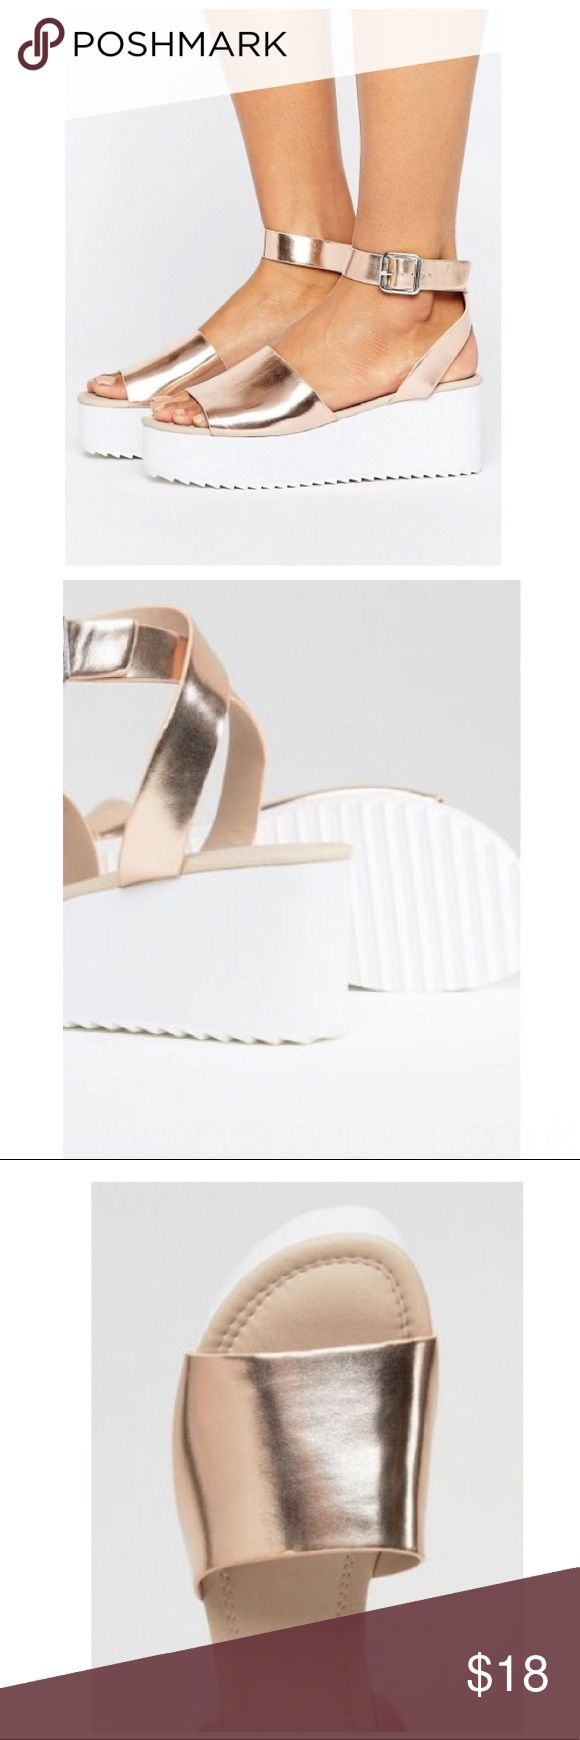 "ASOS Take Off ASOS Take Off-Wedge by ASOS Collection. Ankle-strap fastening, open toe, mid flat form heel. Heel height 3"". Worm once, please see picture for wear. Can be wiped clean, does not come with box. Please be familiar w/ASOS UK/US sizing. ❌NO TRADES/PAYPLA or MODELING❌ ASOS Shoes Sandals"